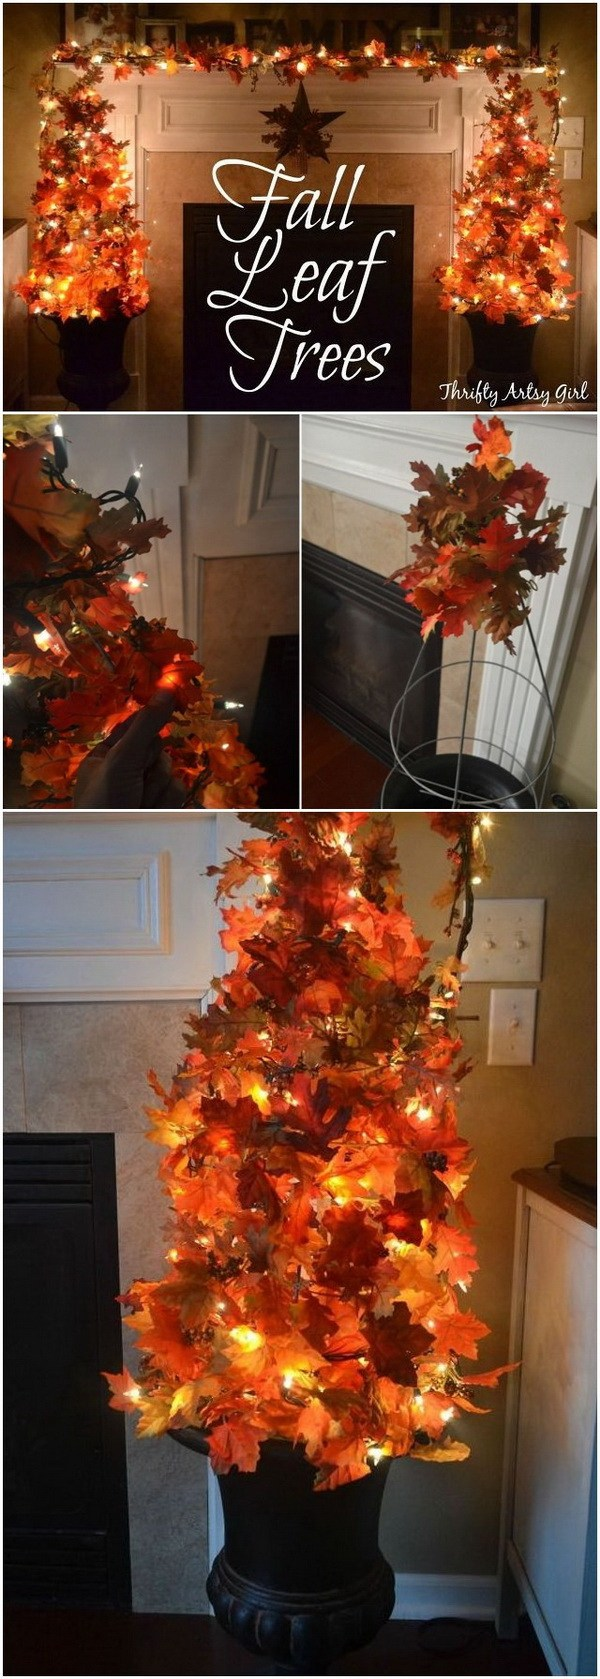 DIY Topiary Tree Using Fake Fall Leaves And Fairy Lights.